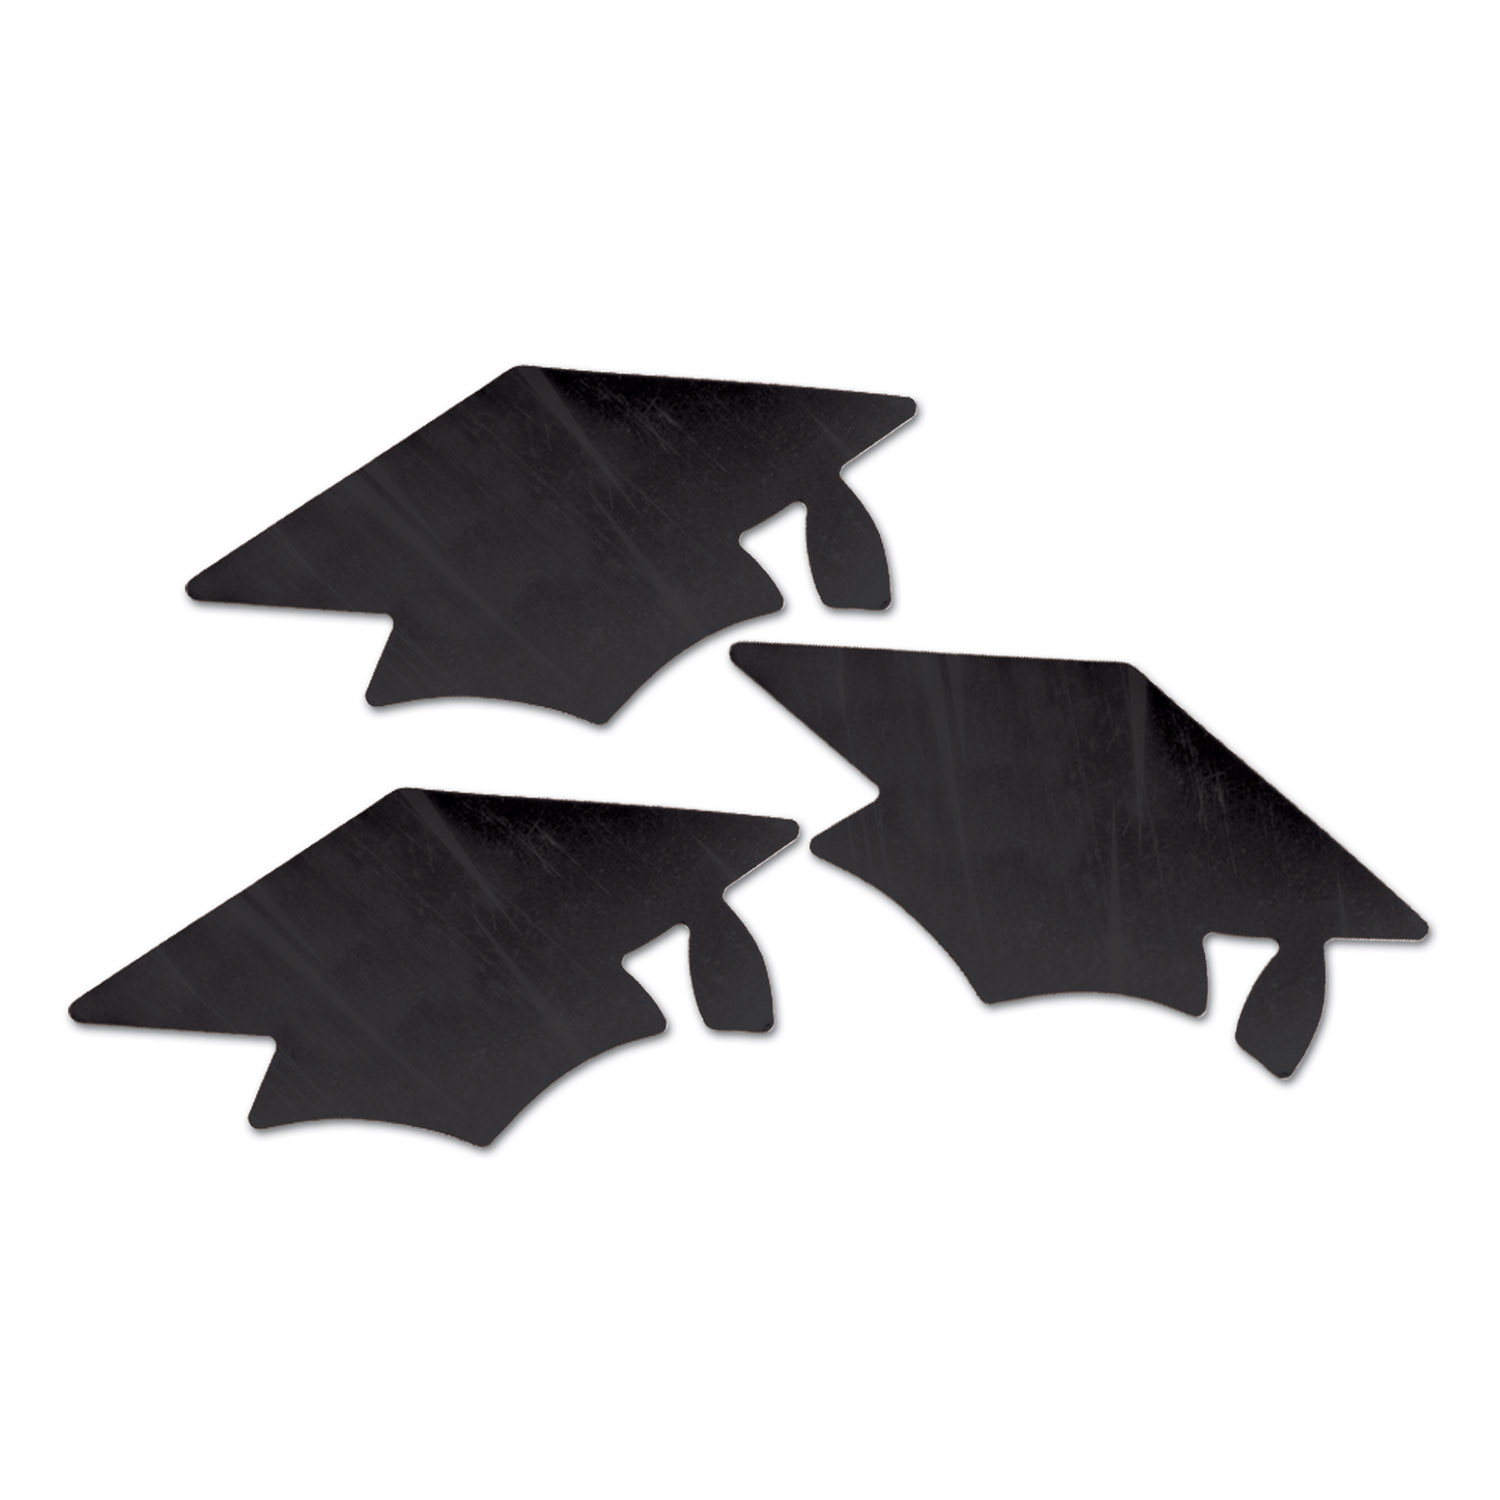 Graduation Hat Silhouette